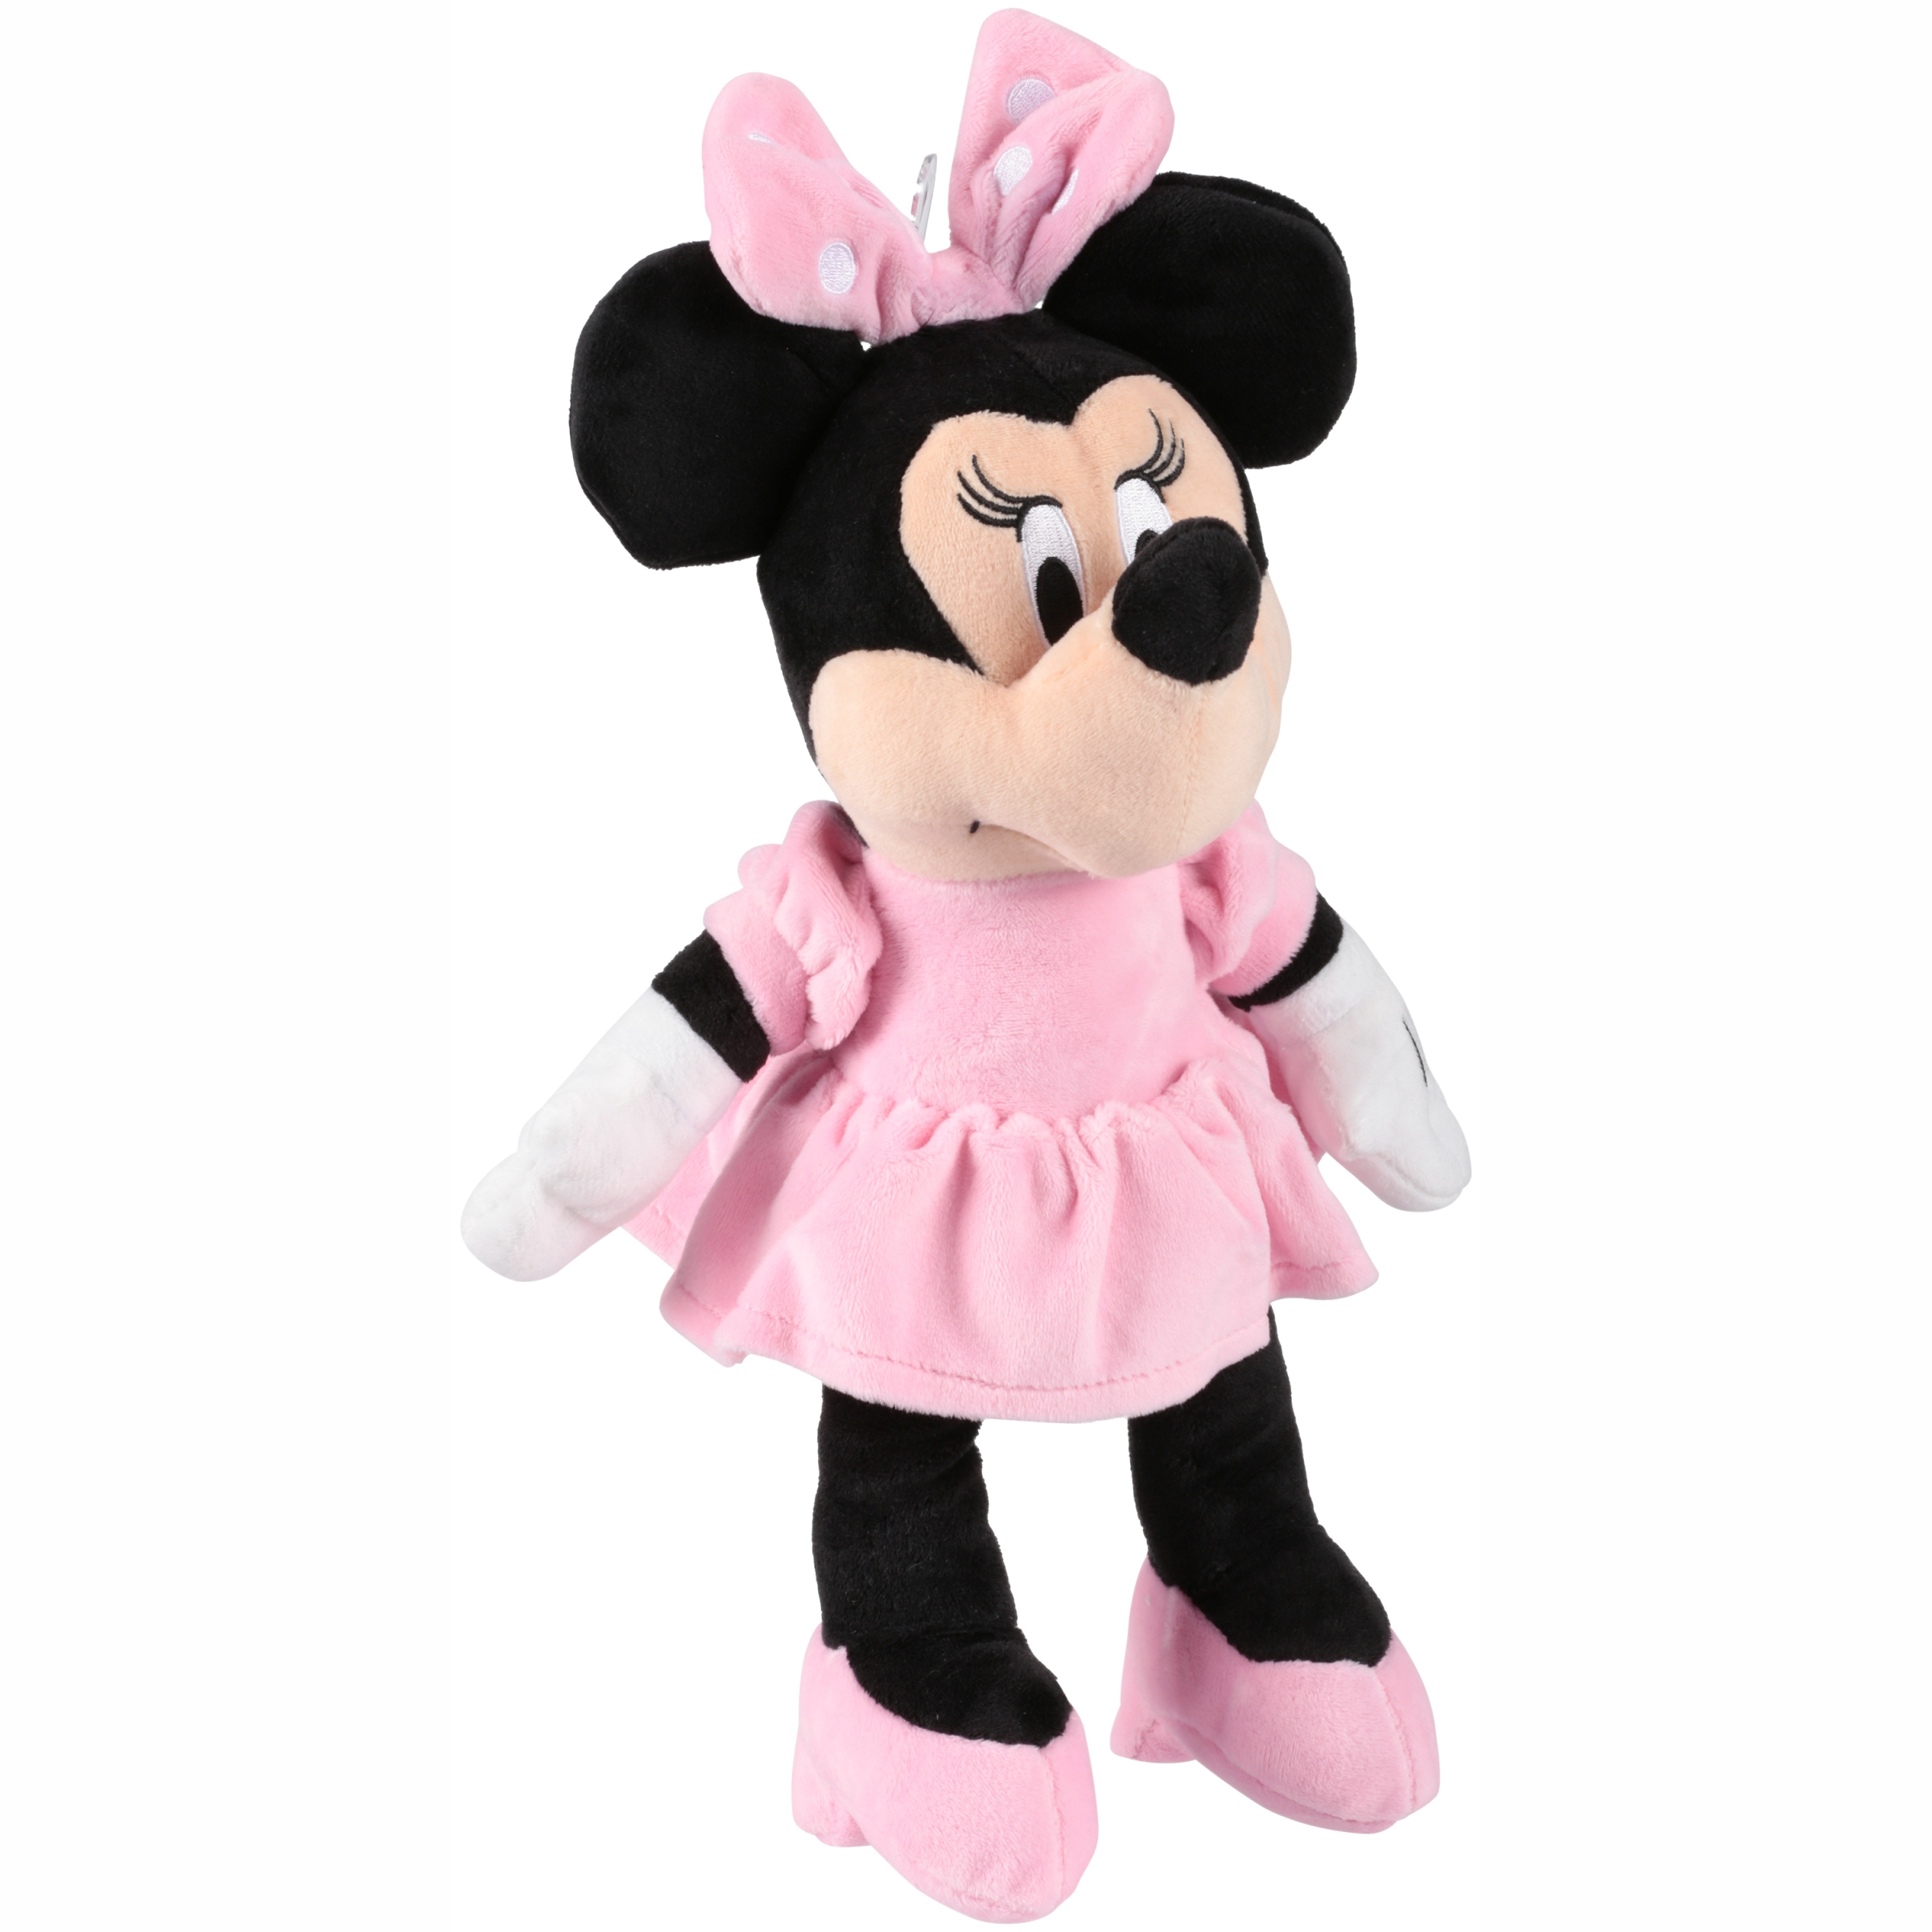 Disney Baby Minnie Mouse Plush Doll